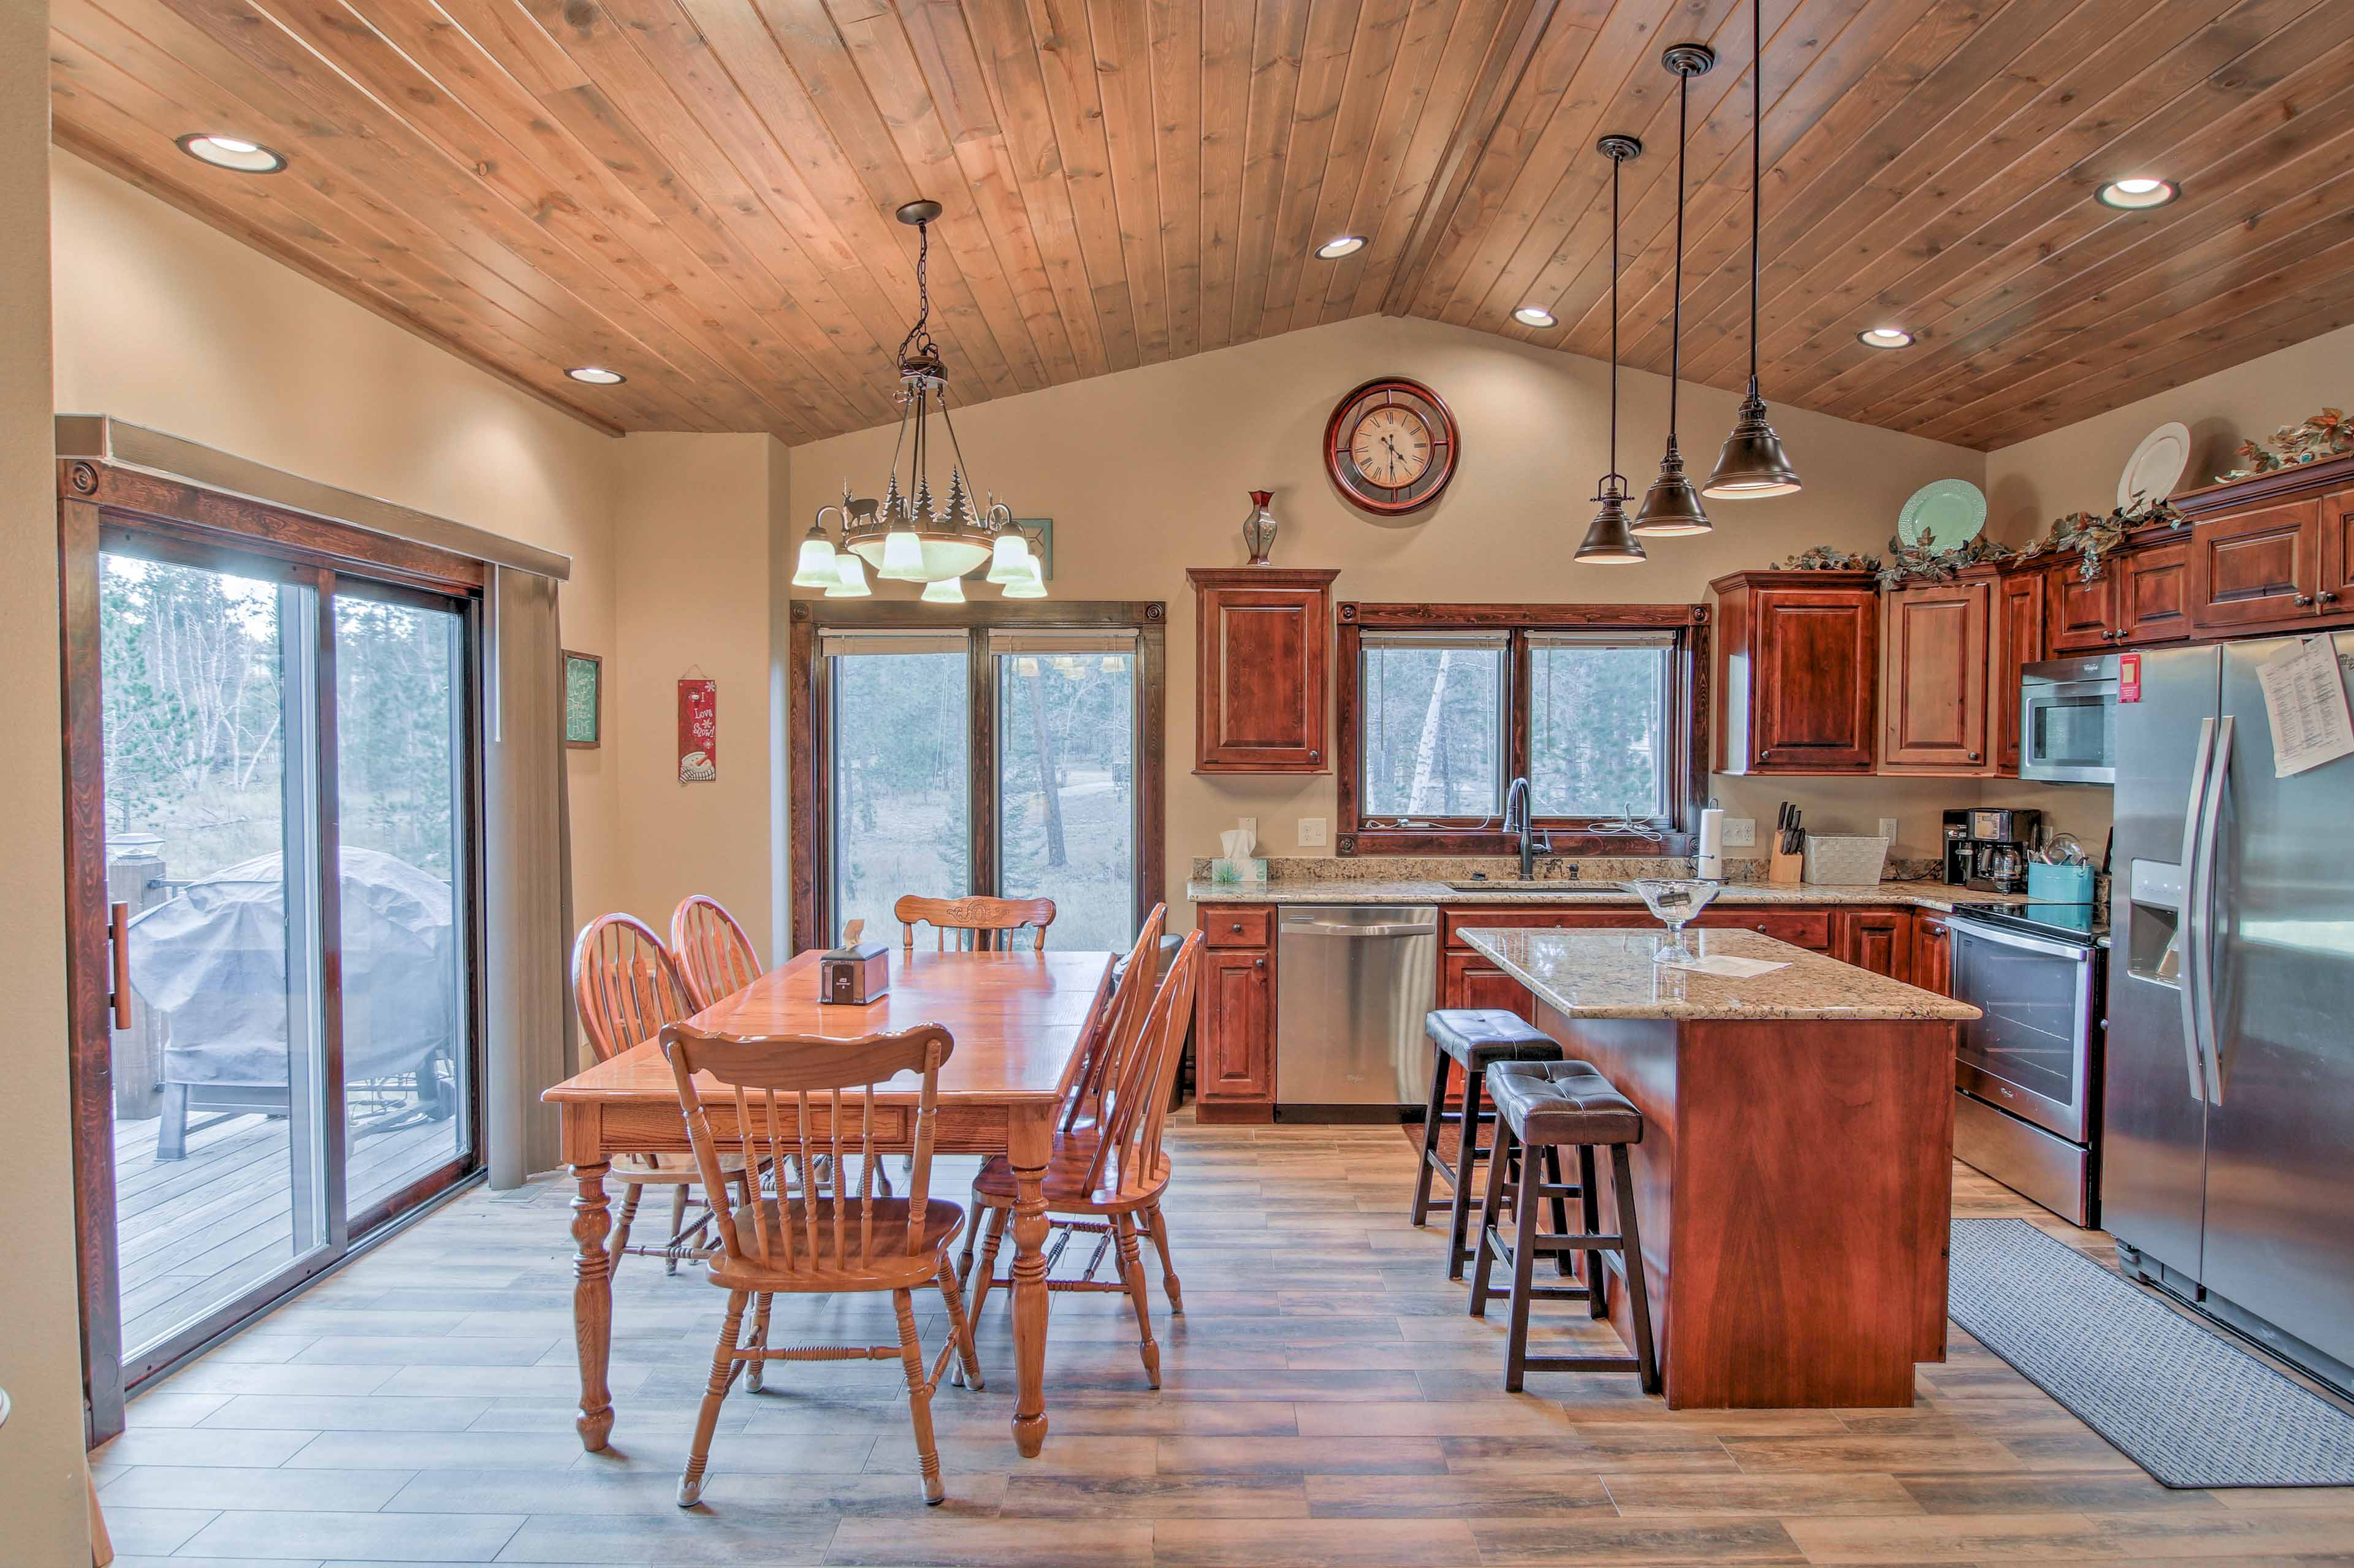 Enjoy family dinners around the 6-person dining table adjacent to the kitchen.